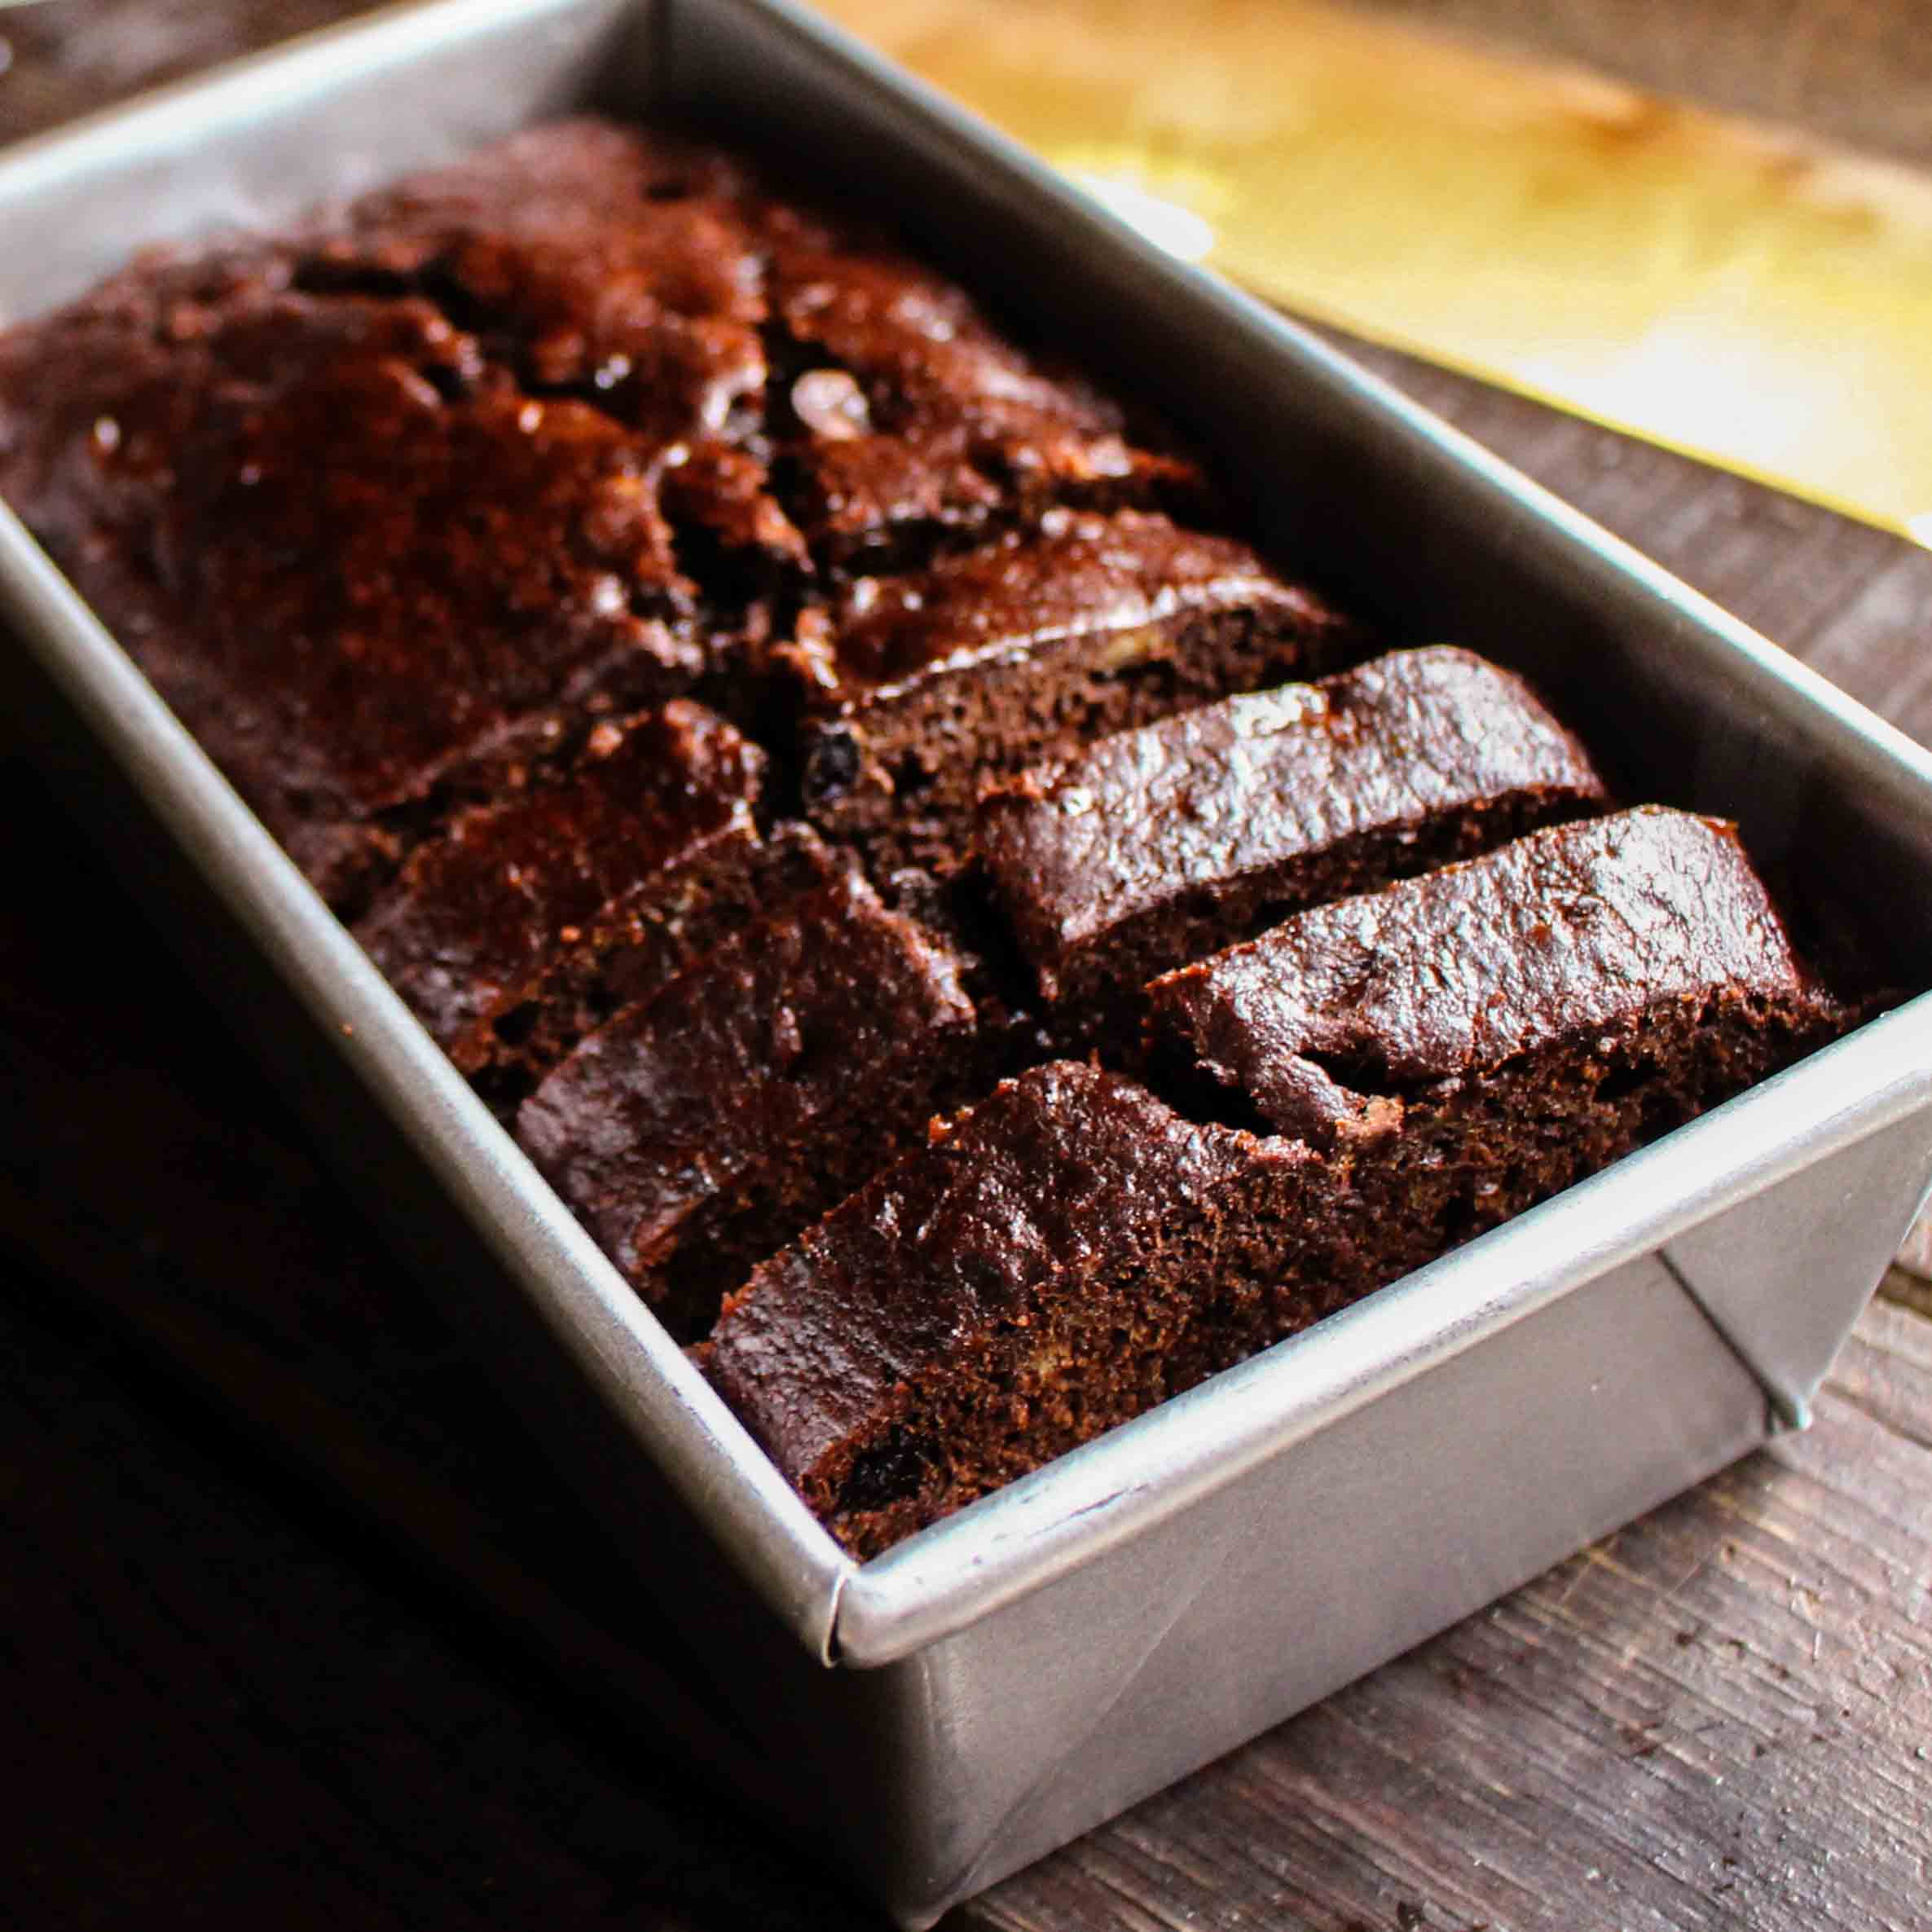 <p>Although it&#8217;s vegan (no eggs and no dairy), this cake—a spin on a classic American wacky cake—delivers a deep mocha flavor. For best results, use a high-quality Dutch-processed cocoa powder. For an alternative cake, melted coconut oil can replace vegetable oil. Use 75 grams coconut oil (1/3 cup + 1 tablespoon) and increase the cocoa [&hellip;]</p>